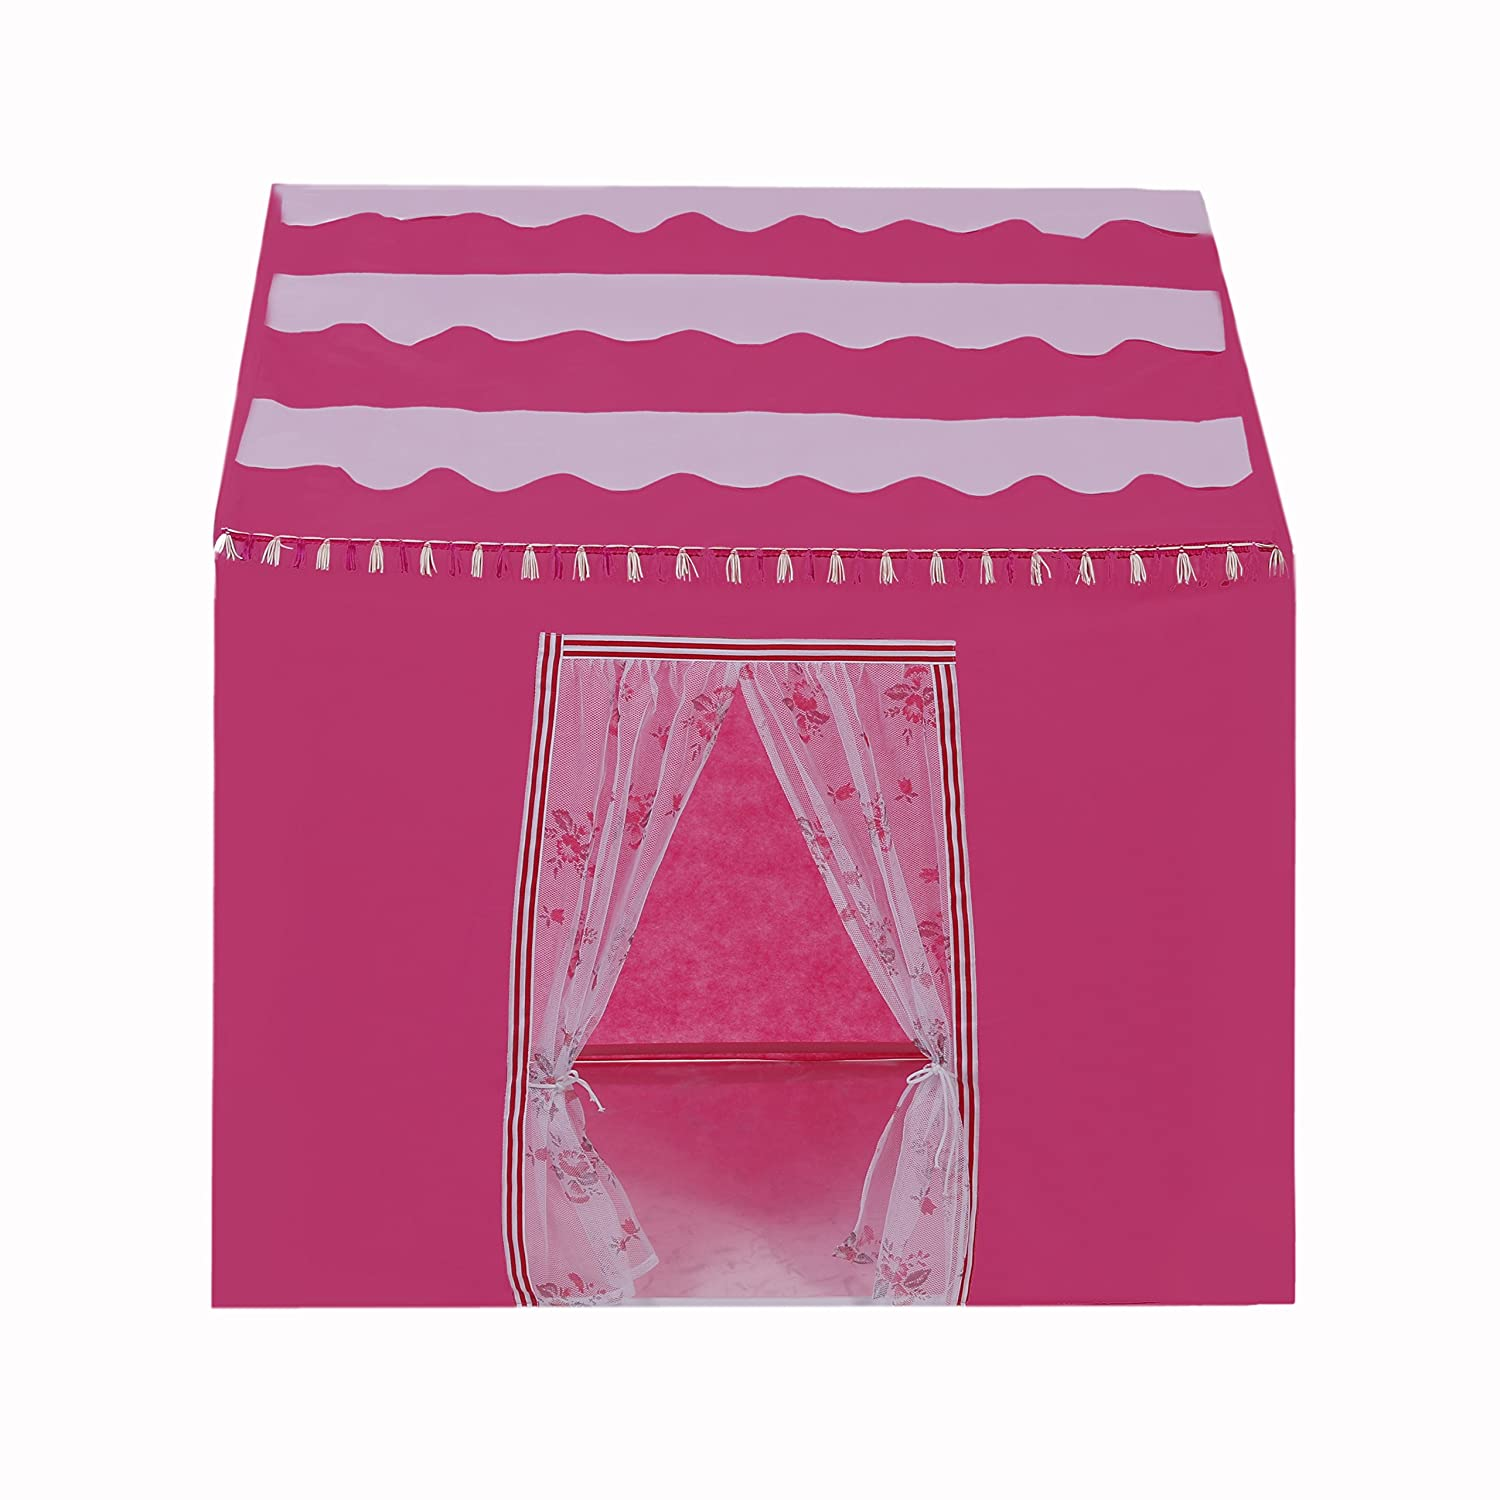 Buy Playhood Play Hood Play Tent House Online at Low Prices in India ...